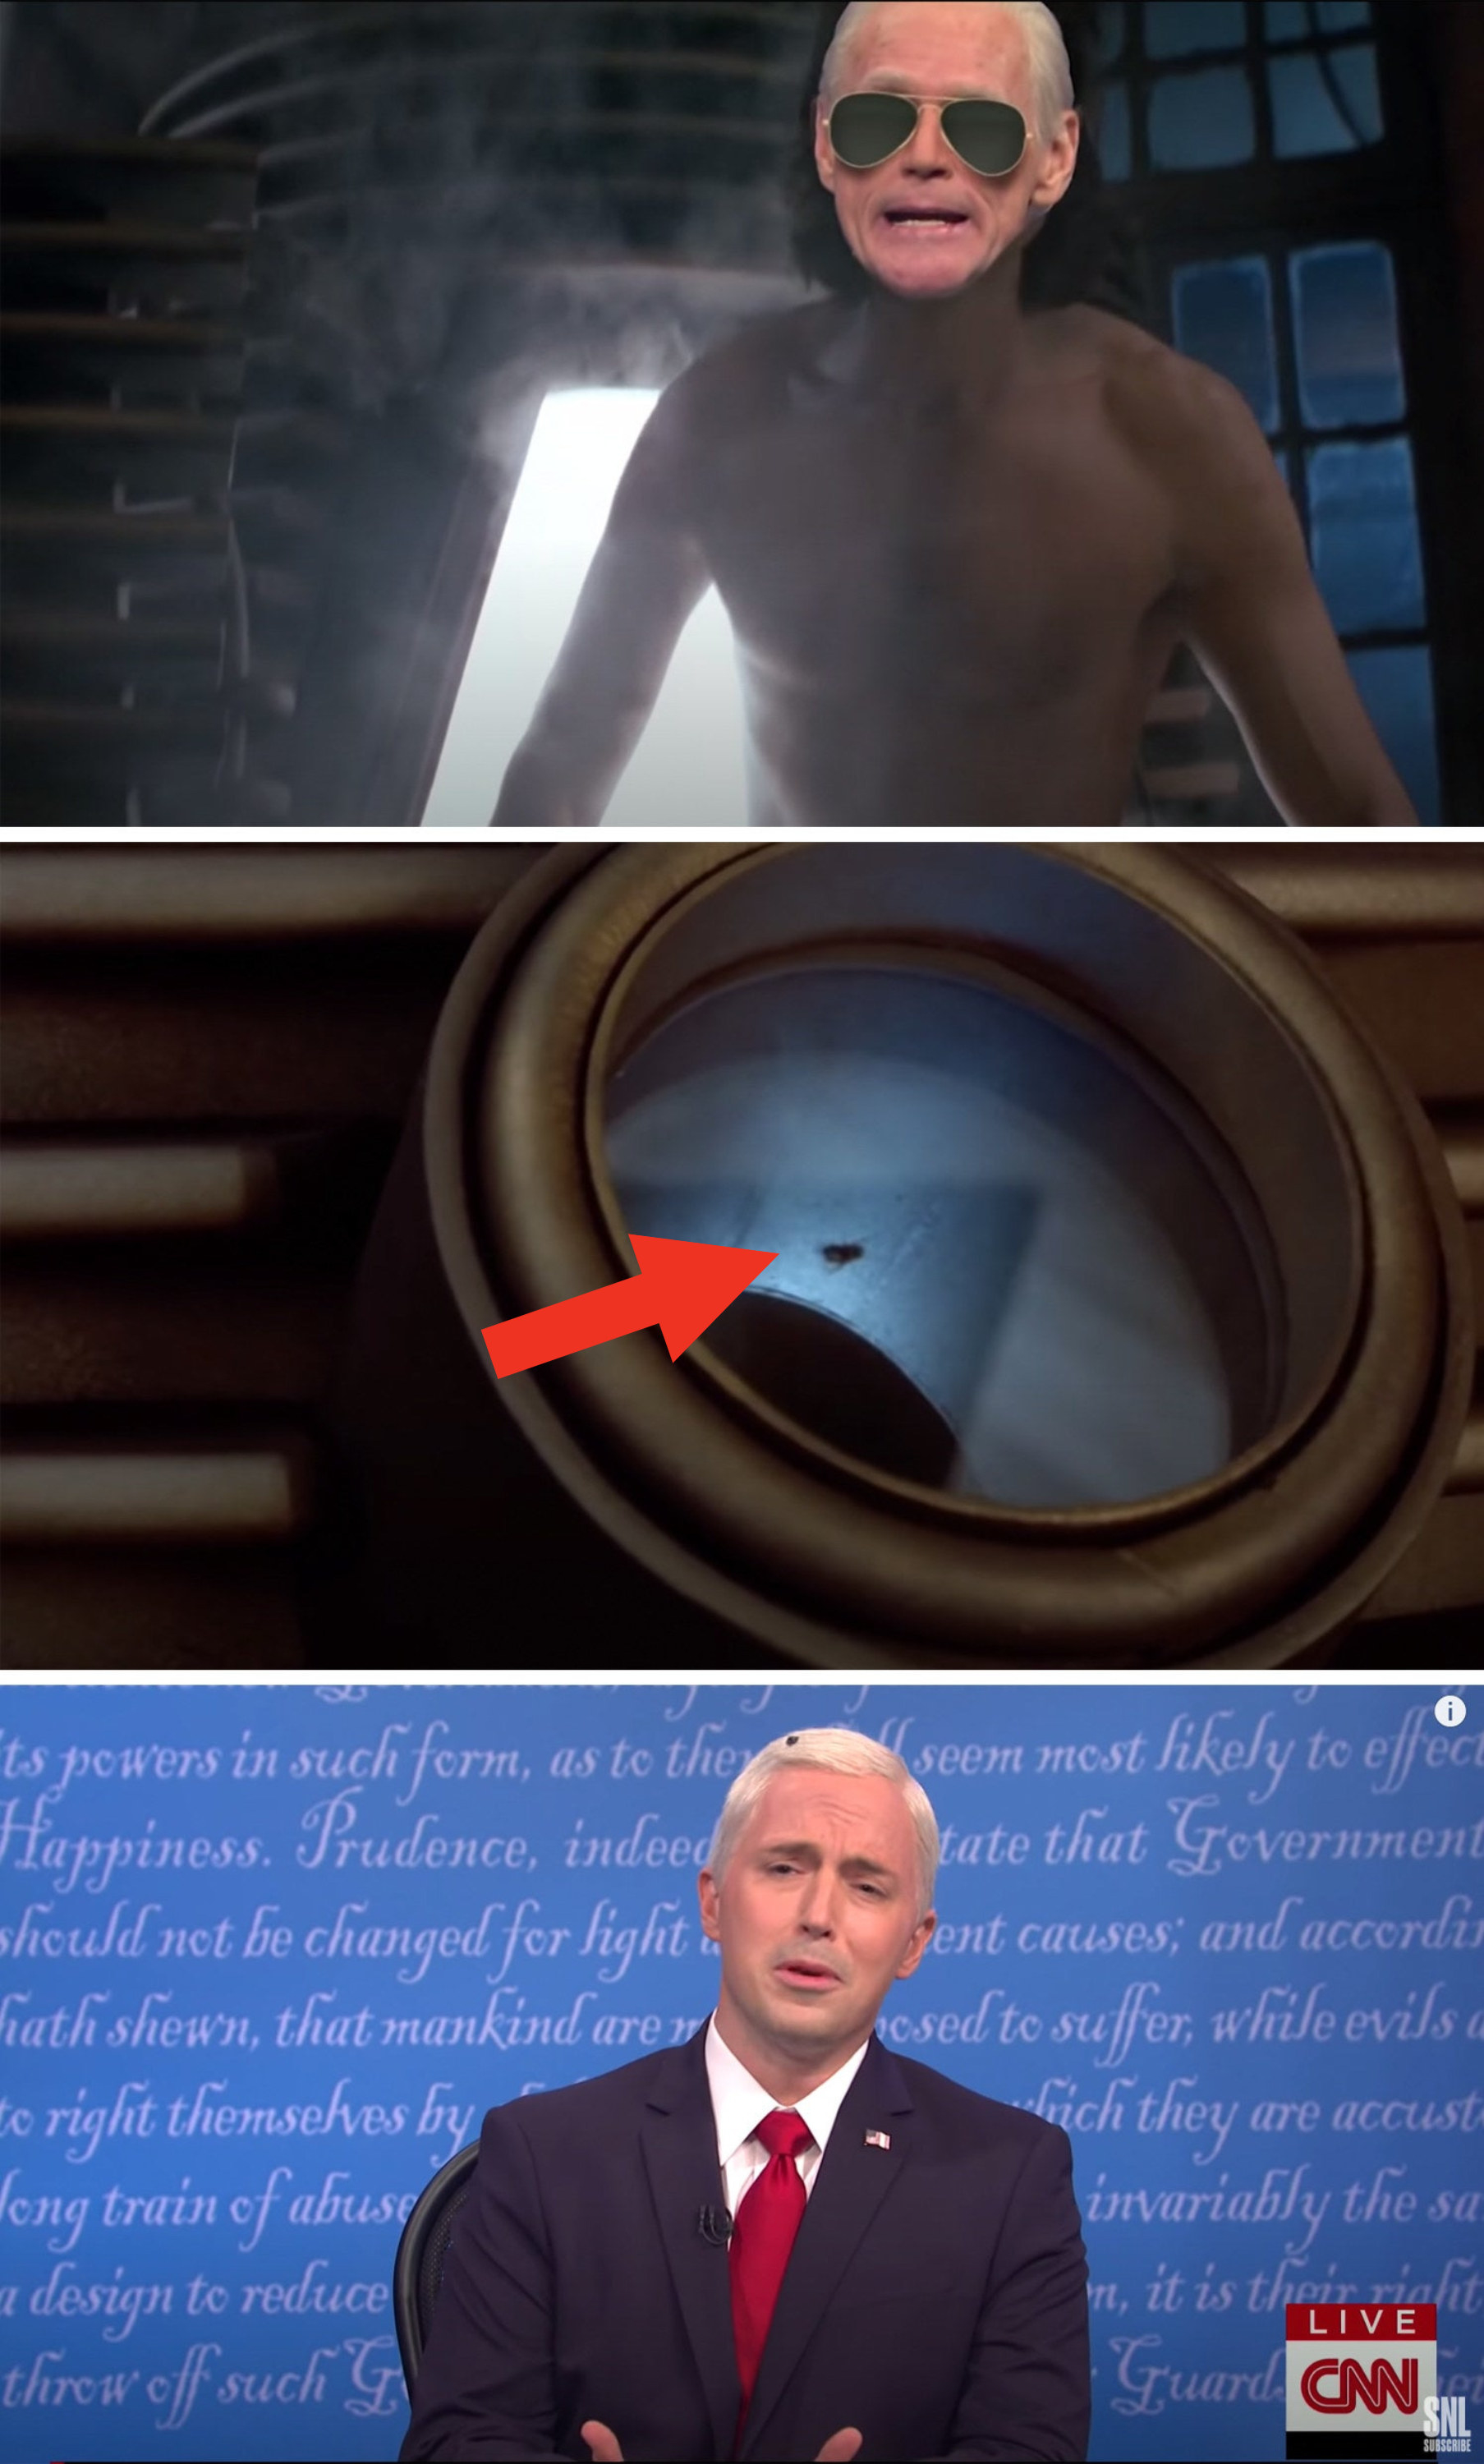 Biden in the machine, a fly in the machine, and the fly on Pence's head